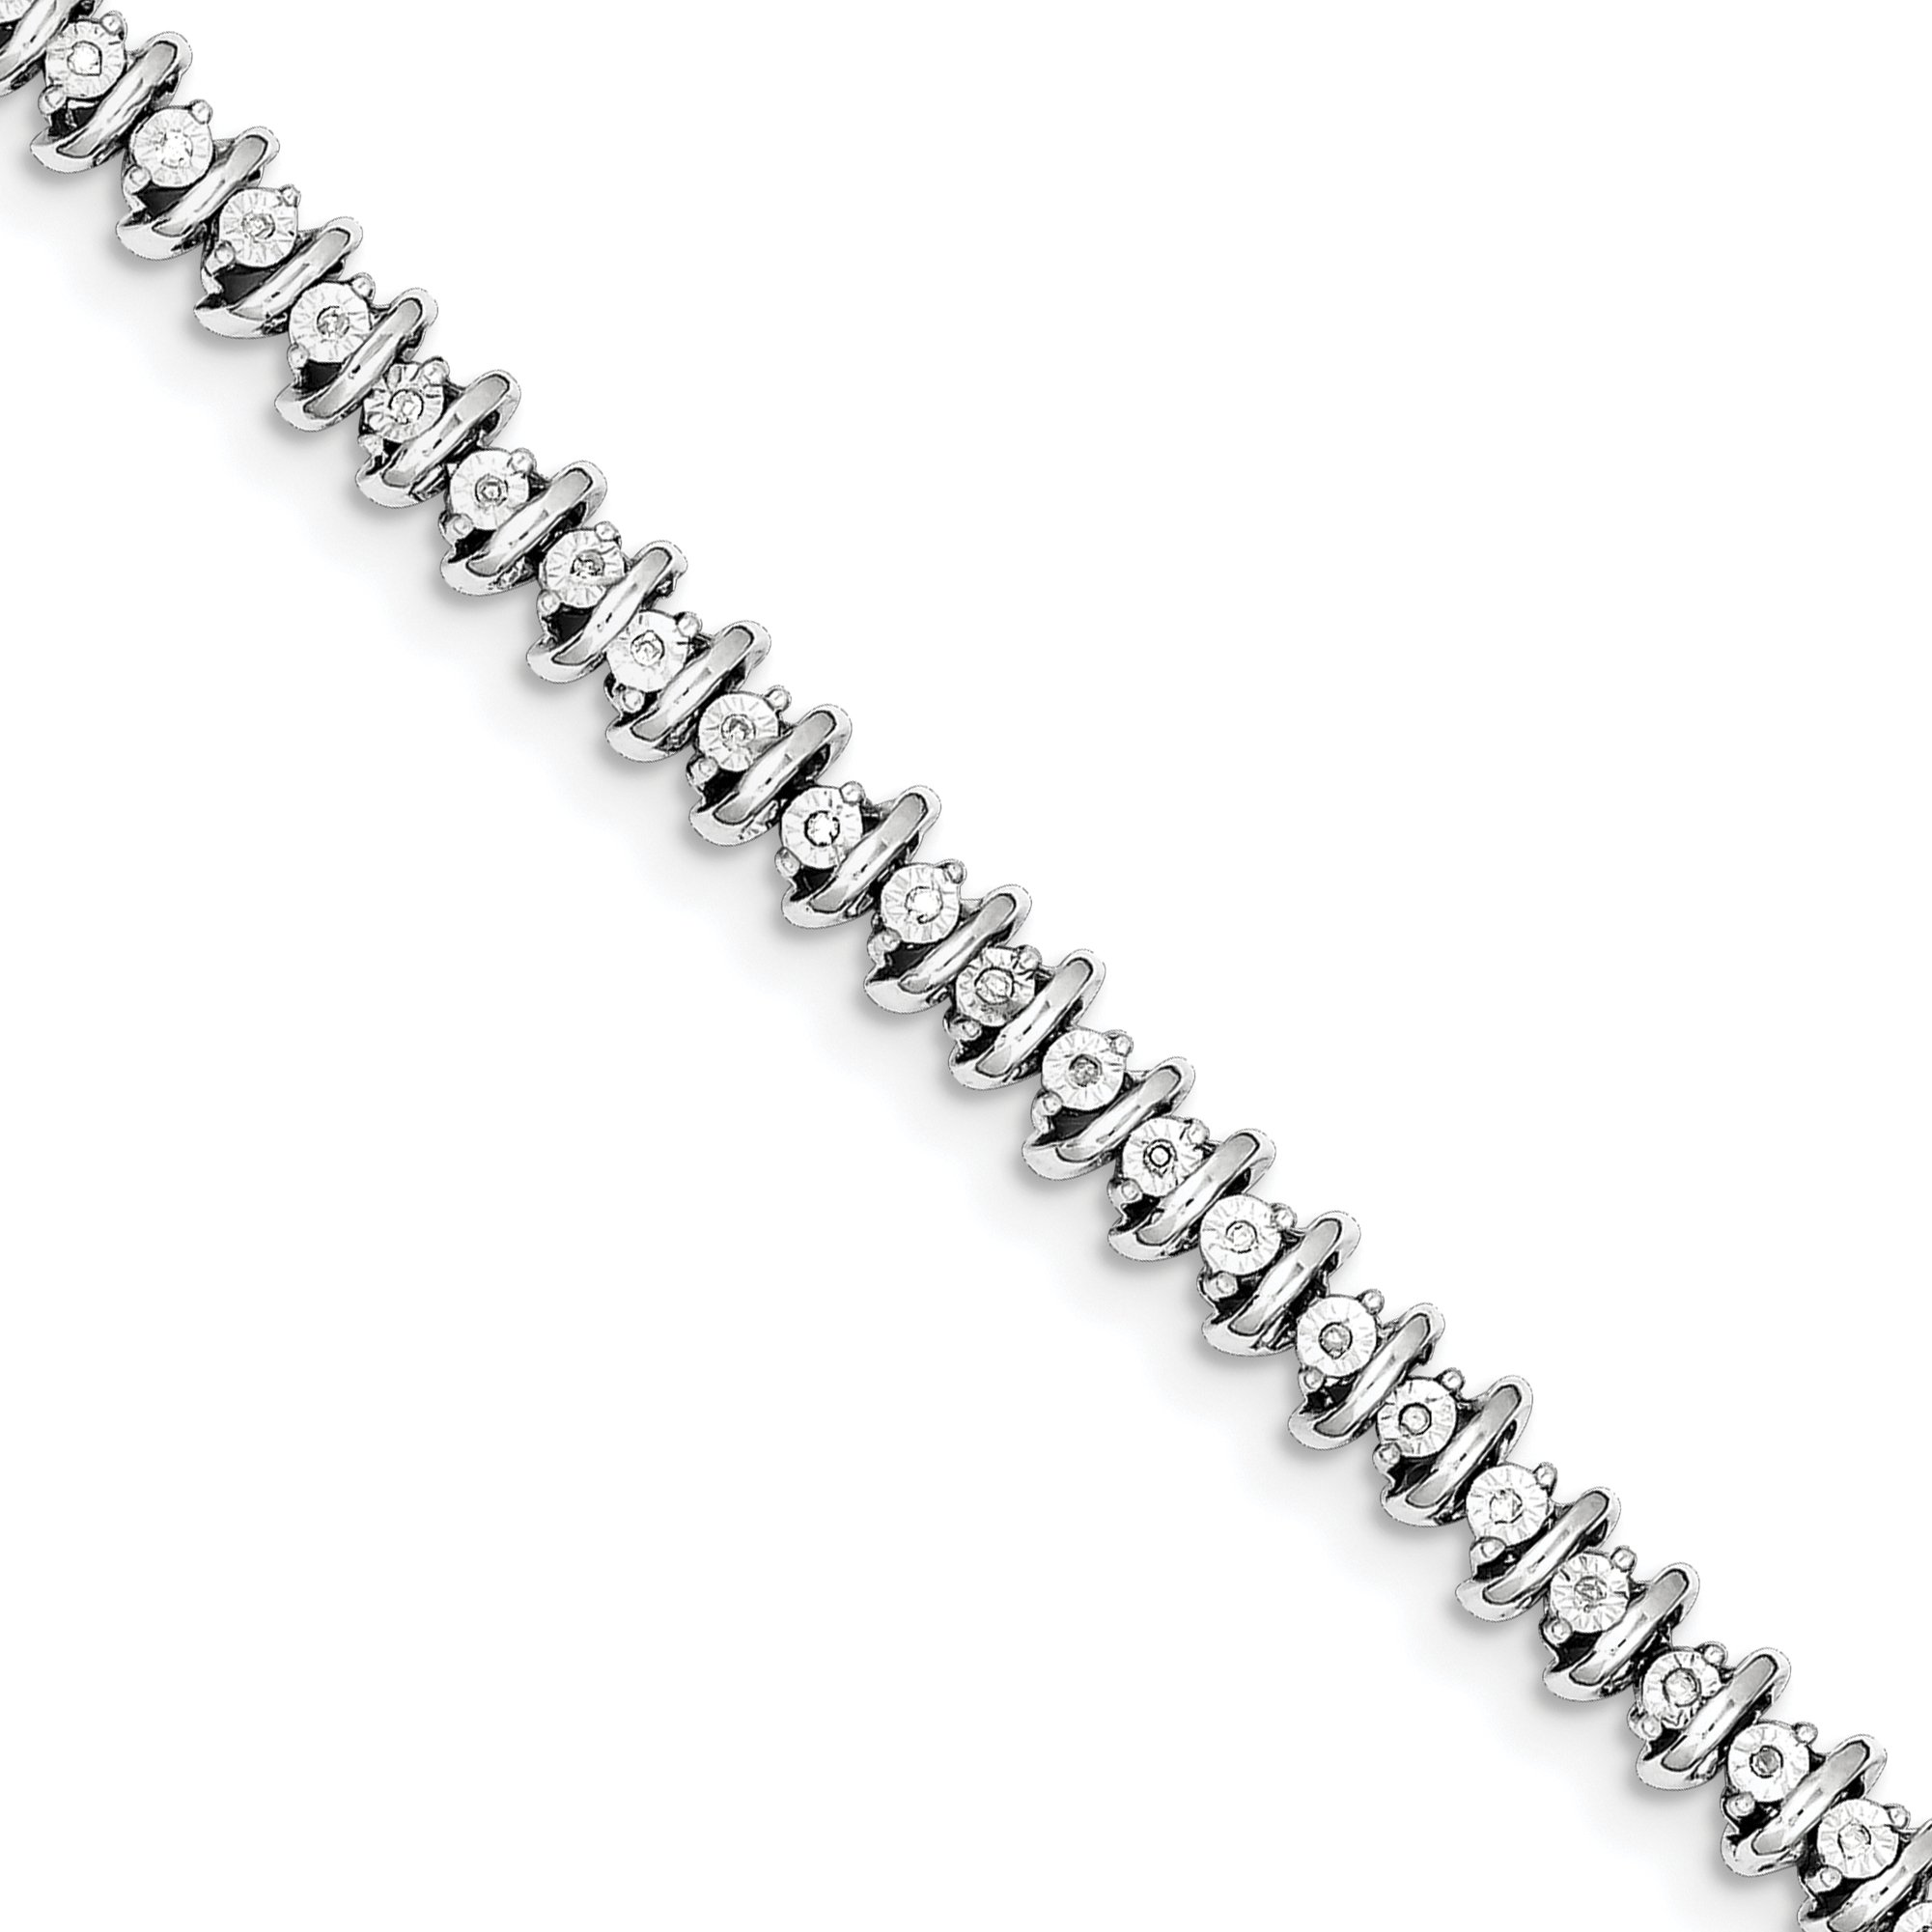 ICE CARATS 925 Sterling Silver Diamond Tennis Bracelet 7 Inch Add-a-